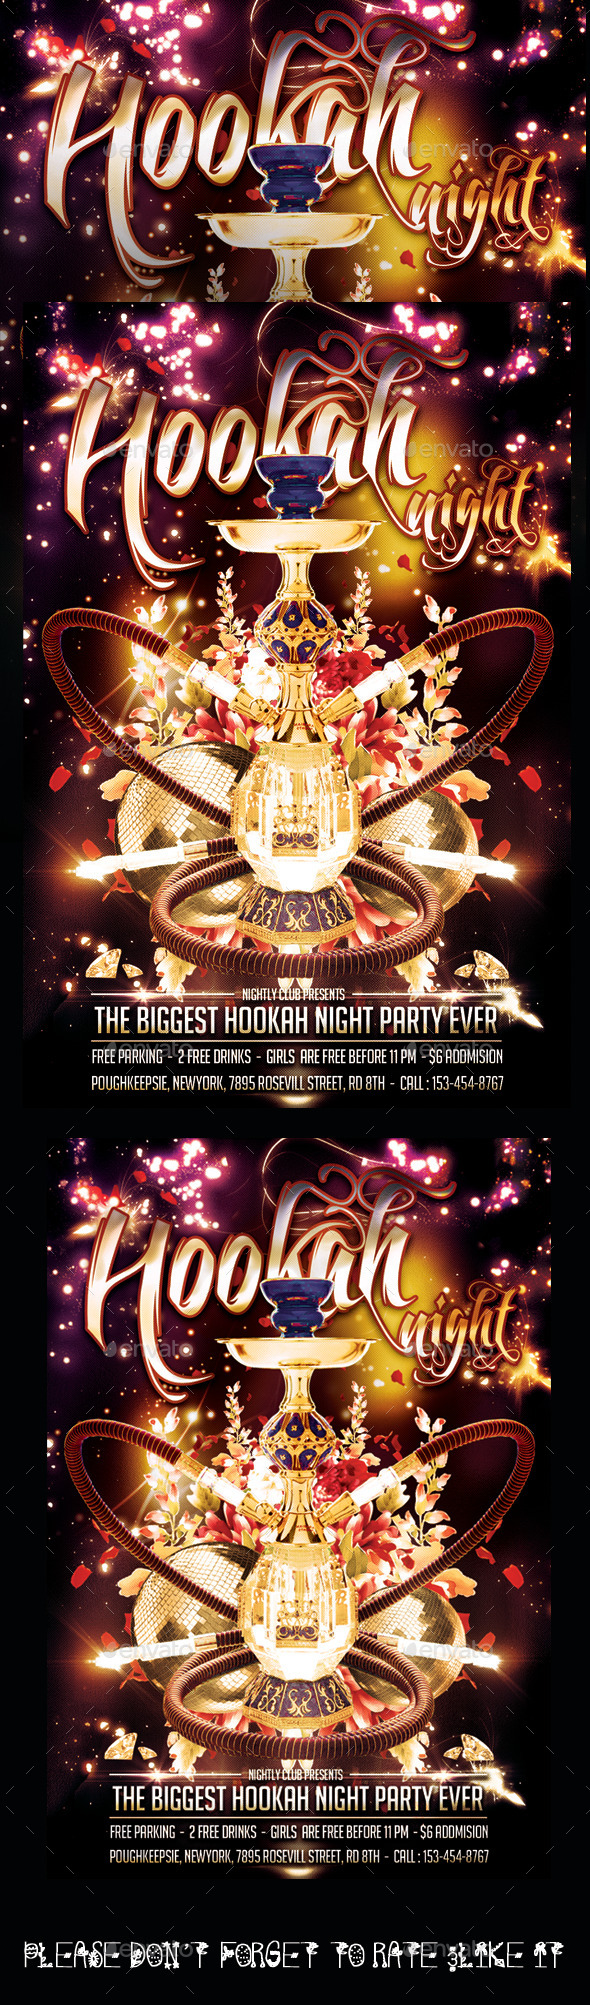 Hookah Night Flyer - Flyers Print Templates